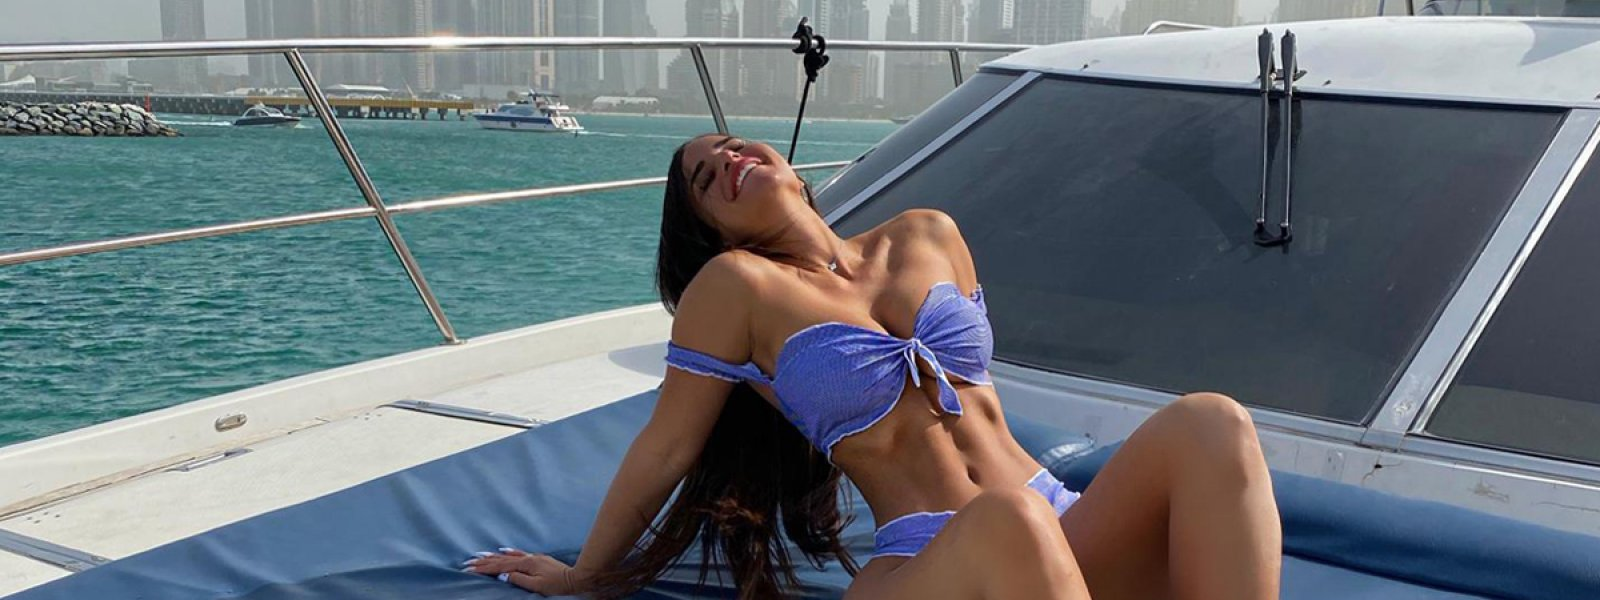 Lady enjoying the cruise on the front deck of the private yacht